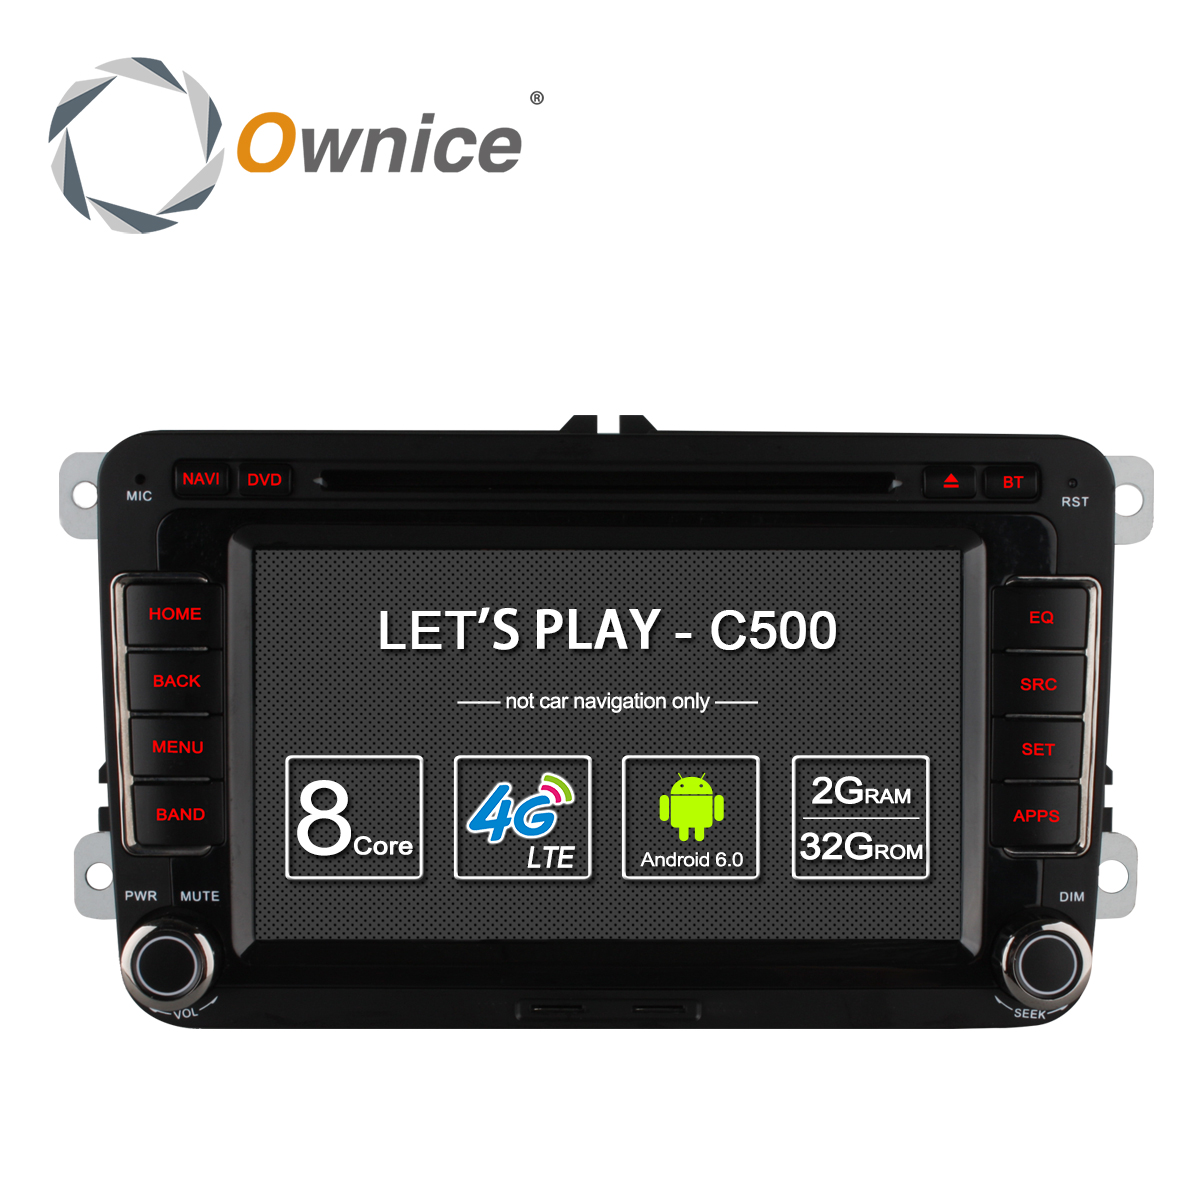 imágenes para Ownice Android 6.0 8 Núcleo 32G ROM Reproductor de DVD Del Coche Para Volkswagen Passat POLO GOLF Seat Leon Skoda Con GPS Navi 4G LTE Red